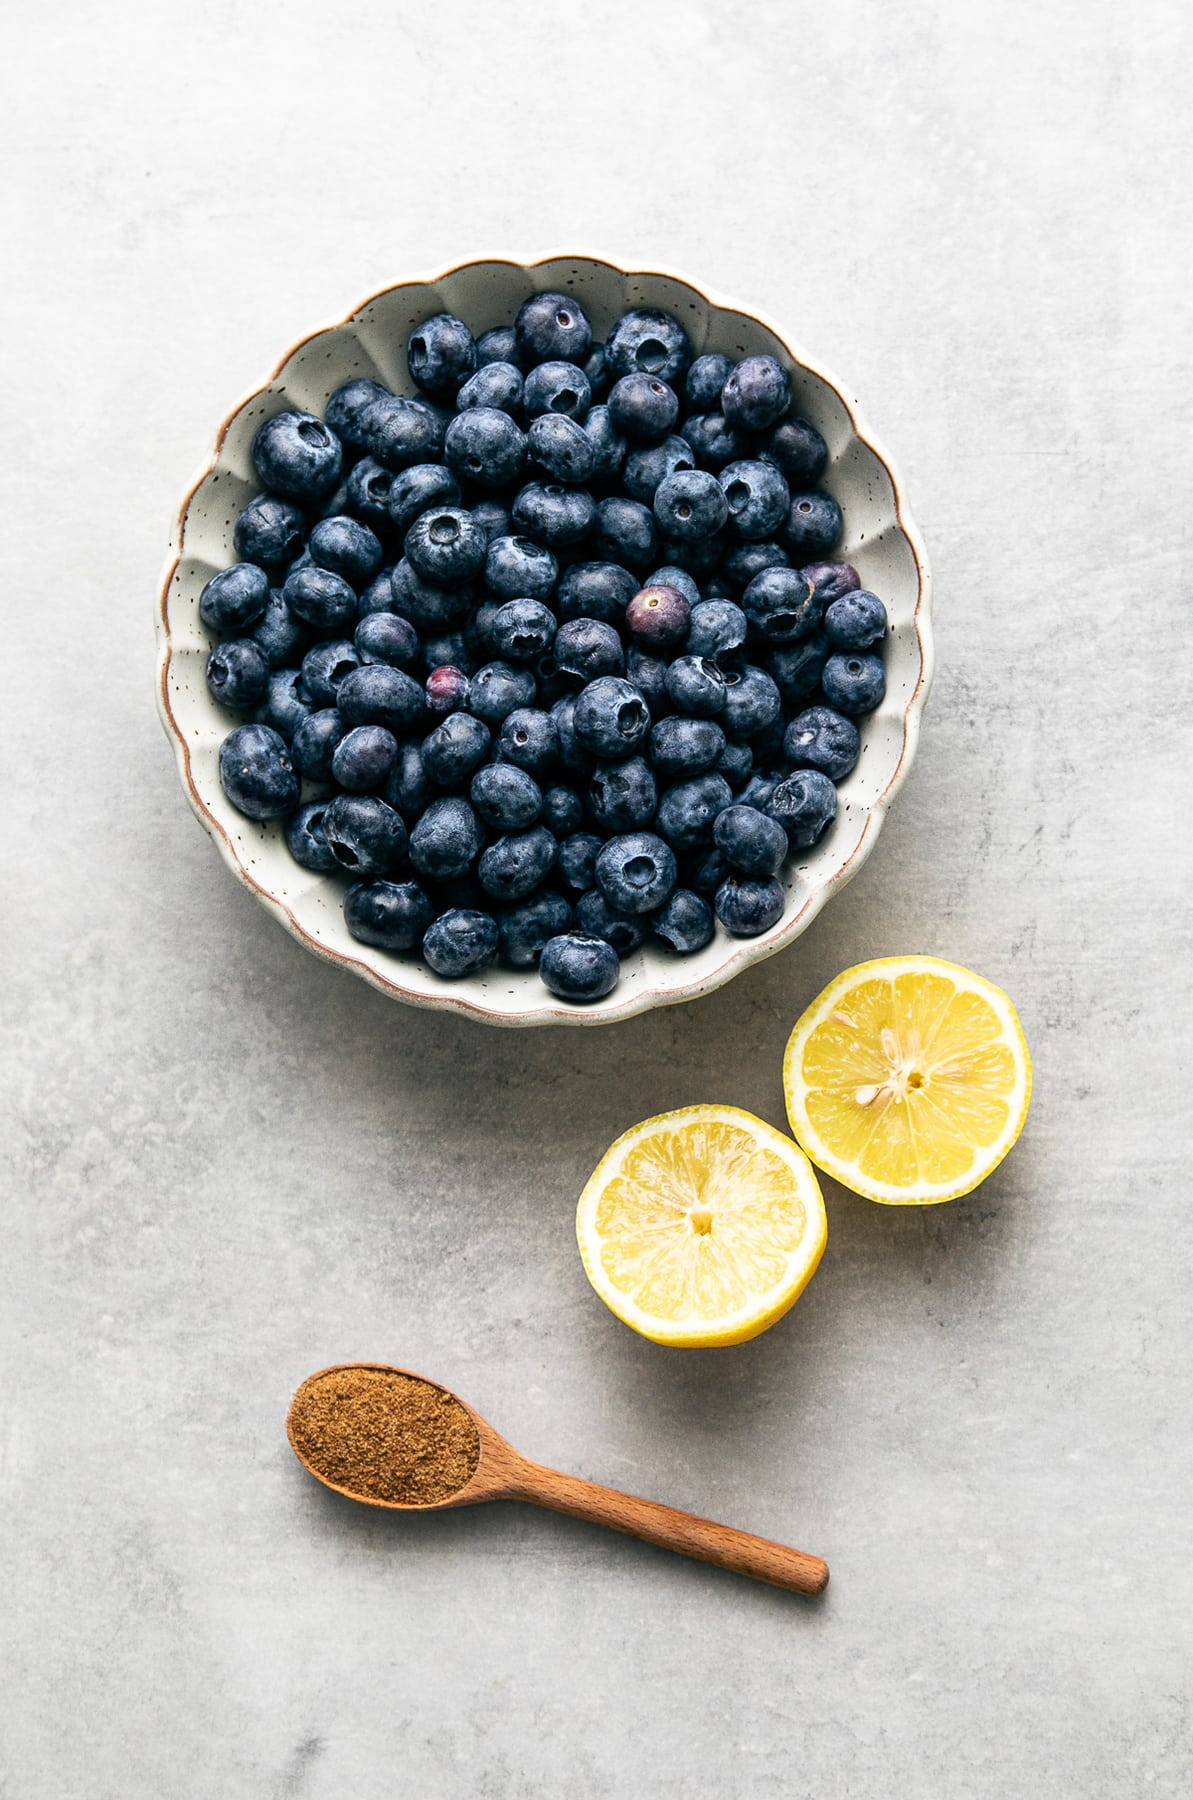 top down view of ingredients used to make fresh blueberry compote.